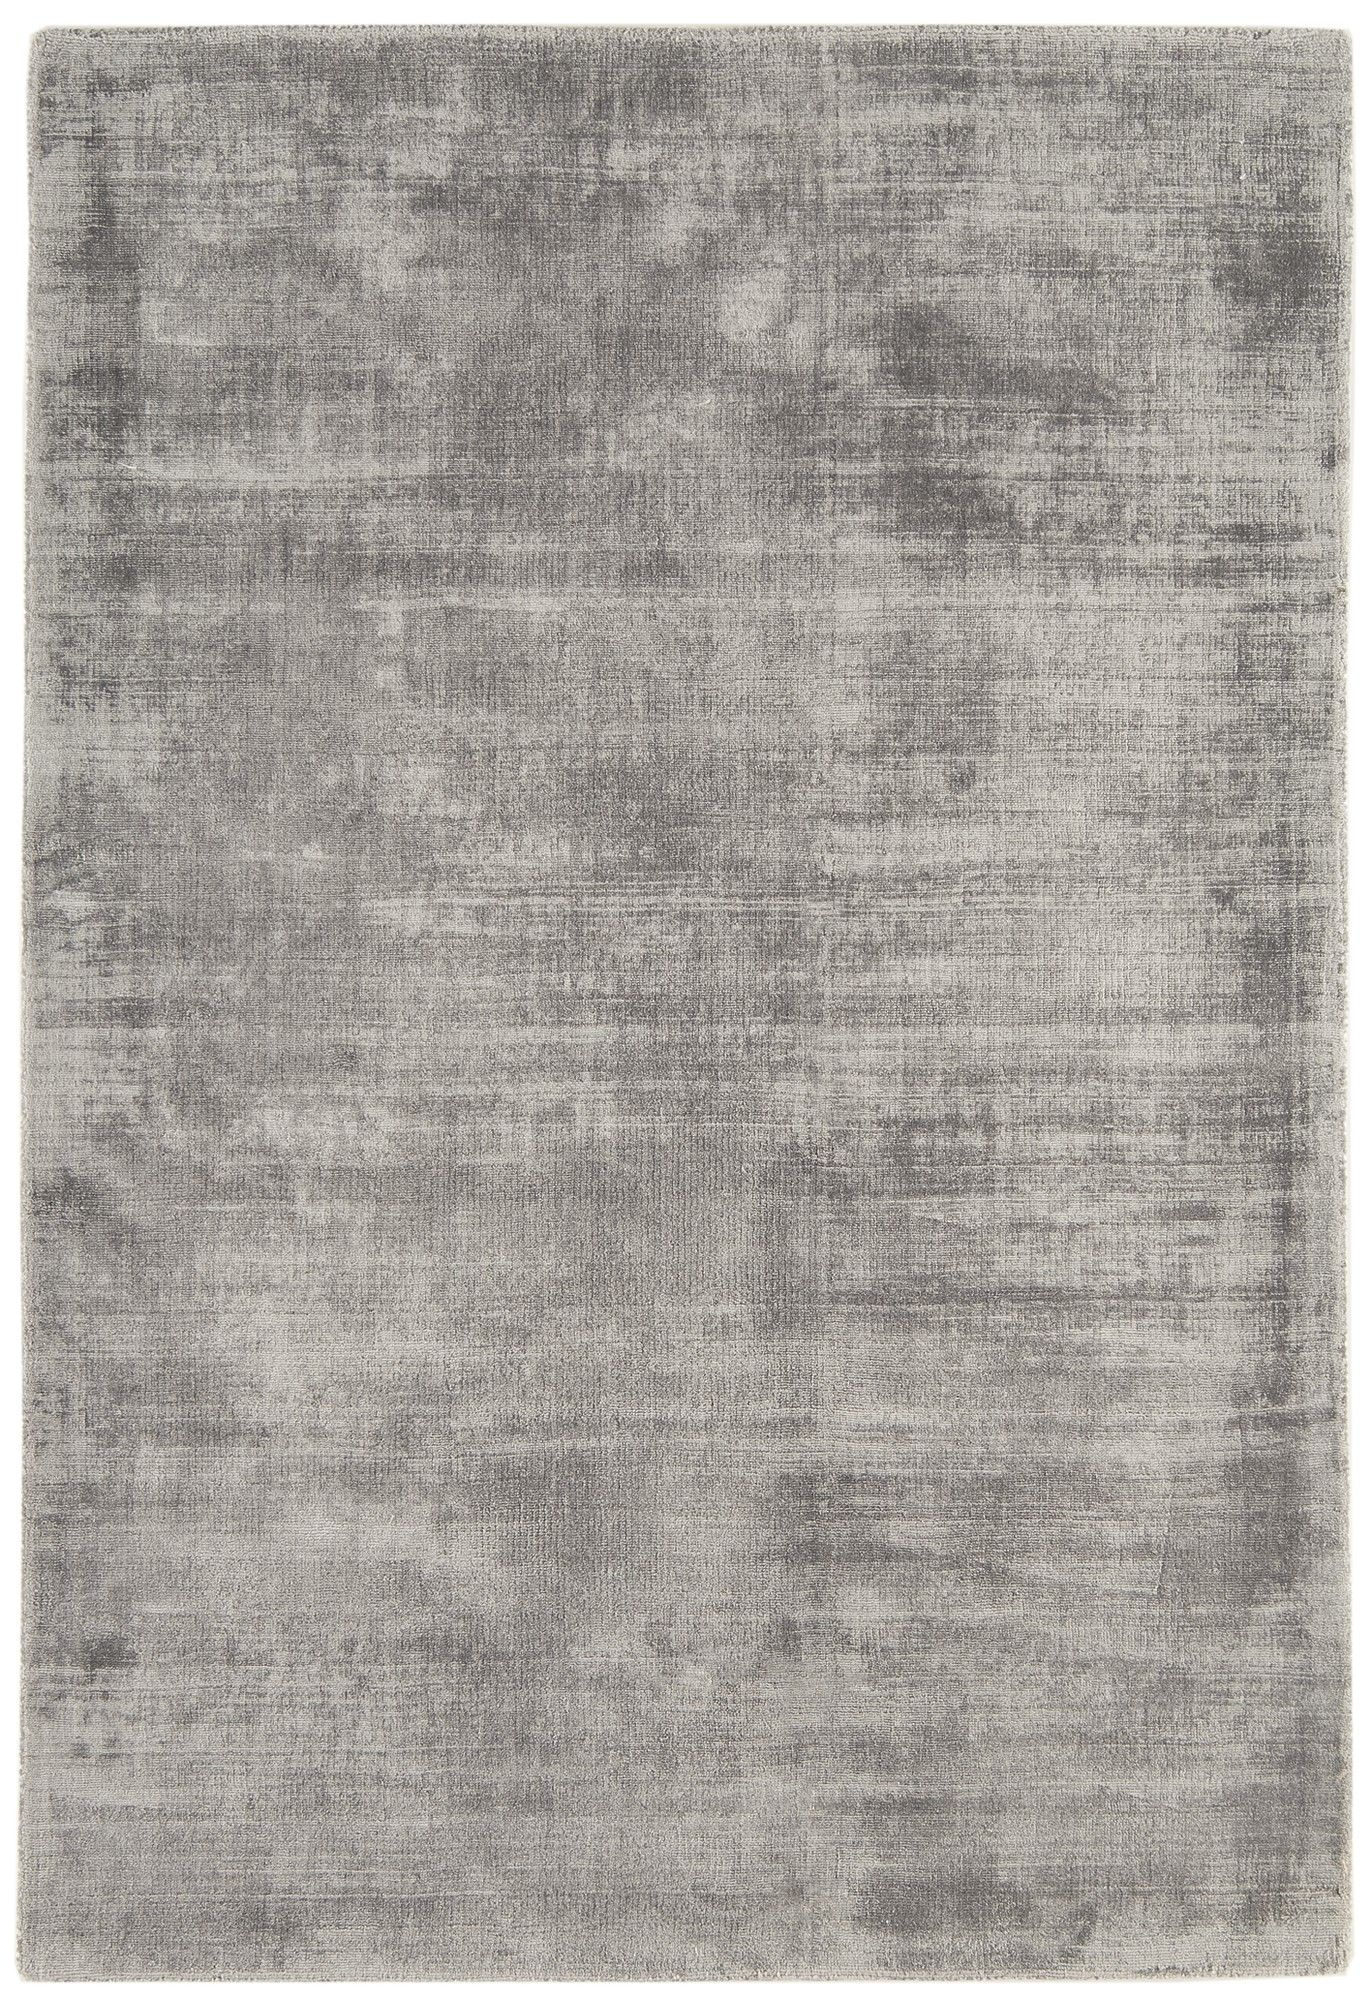 Marshmallow Dark Grey Rug Aflair Rugs Cushions Throws Pinterest And Bedrooms